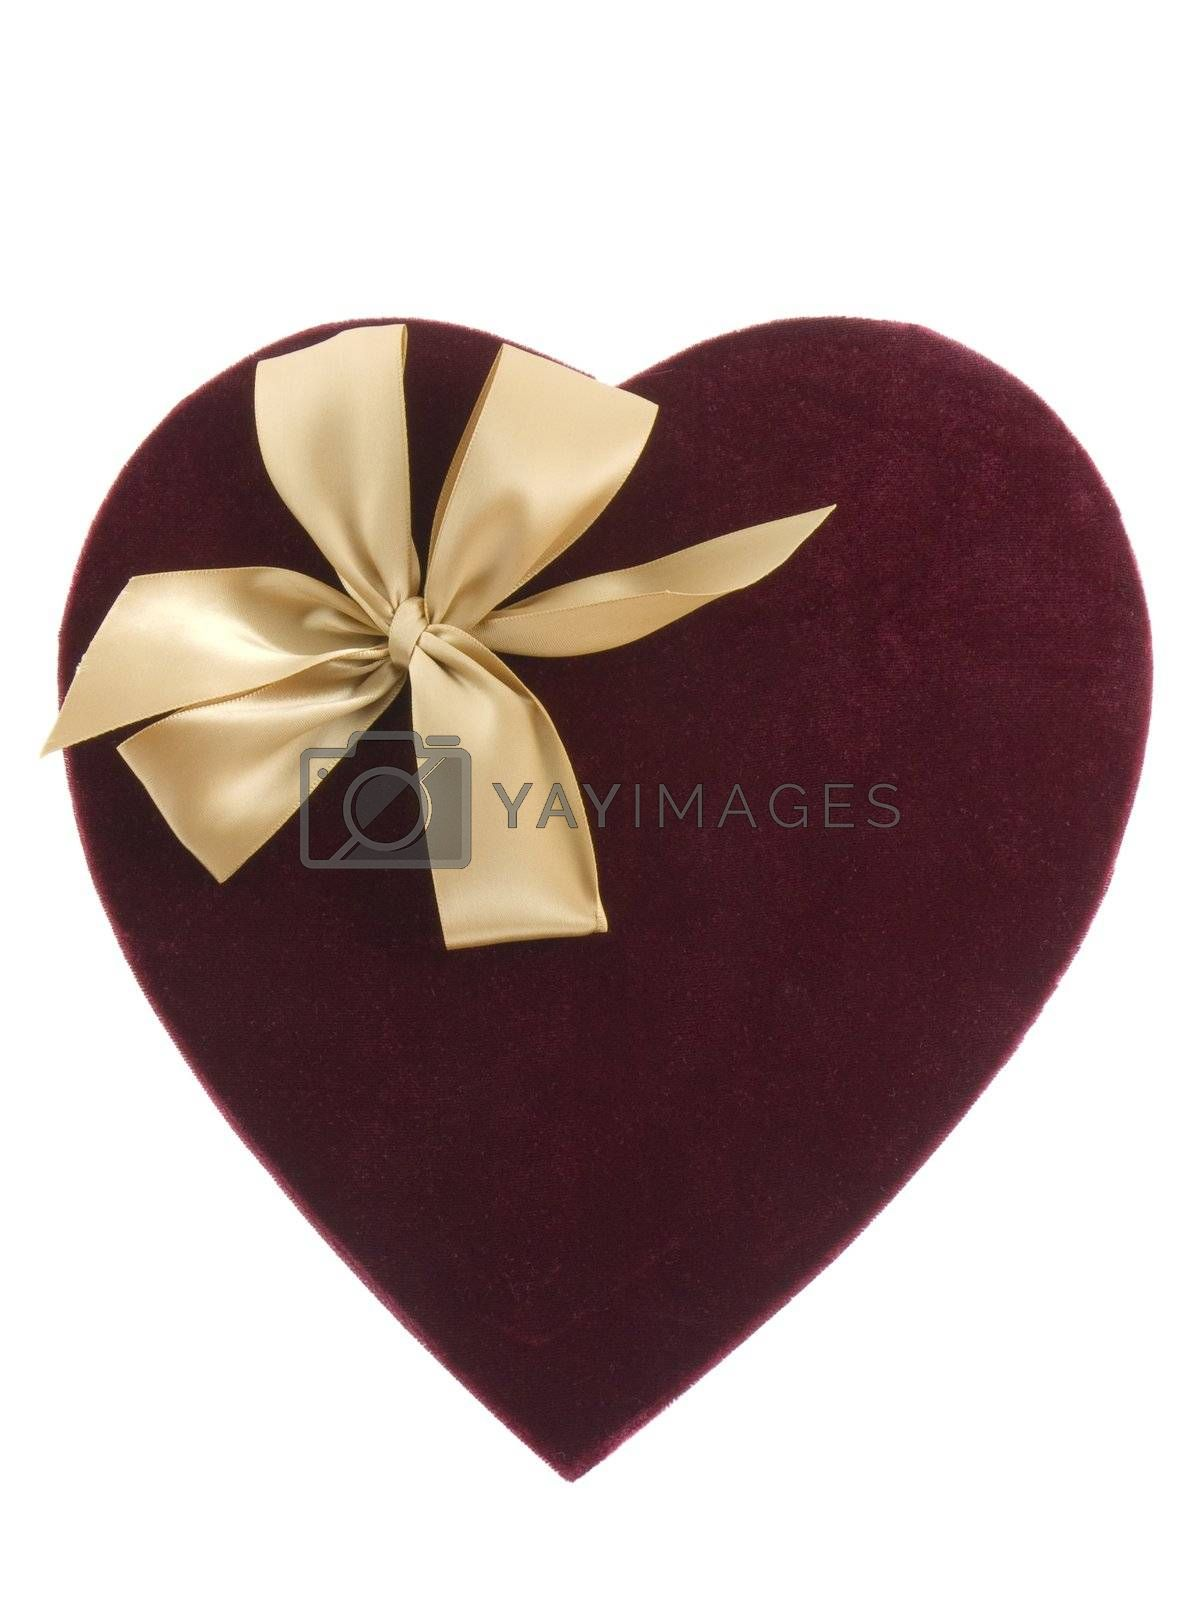 Heart shaped valentines candy box isolated on white